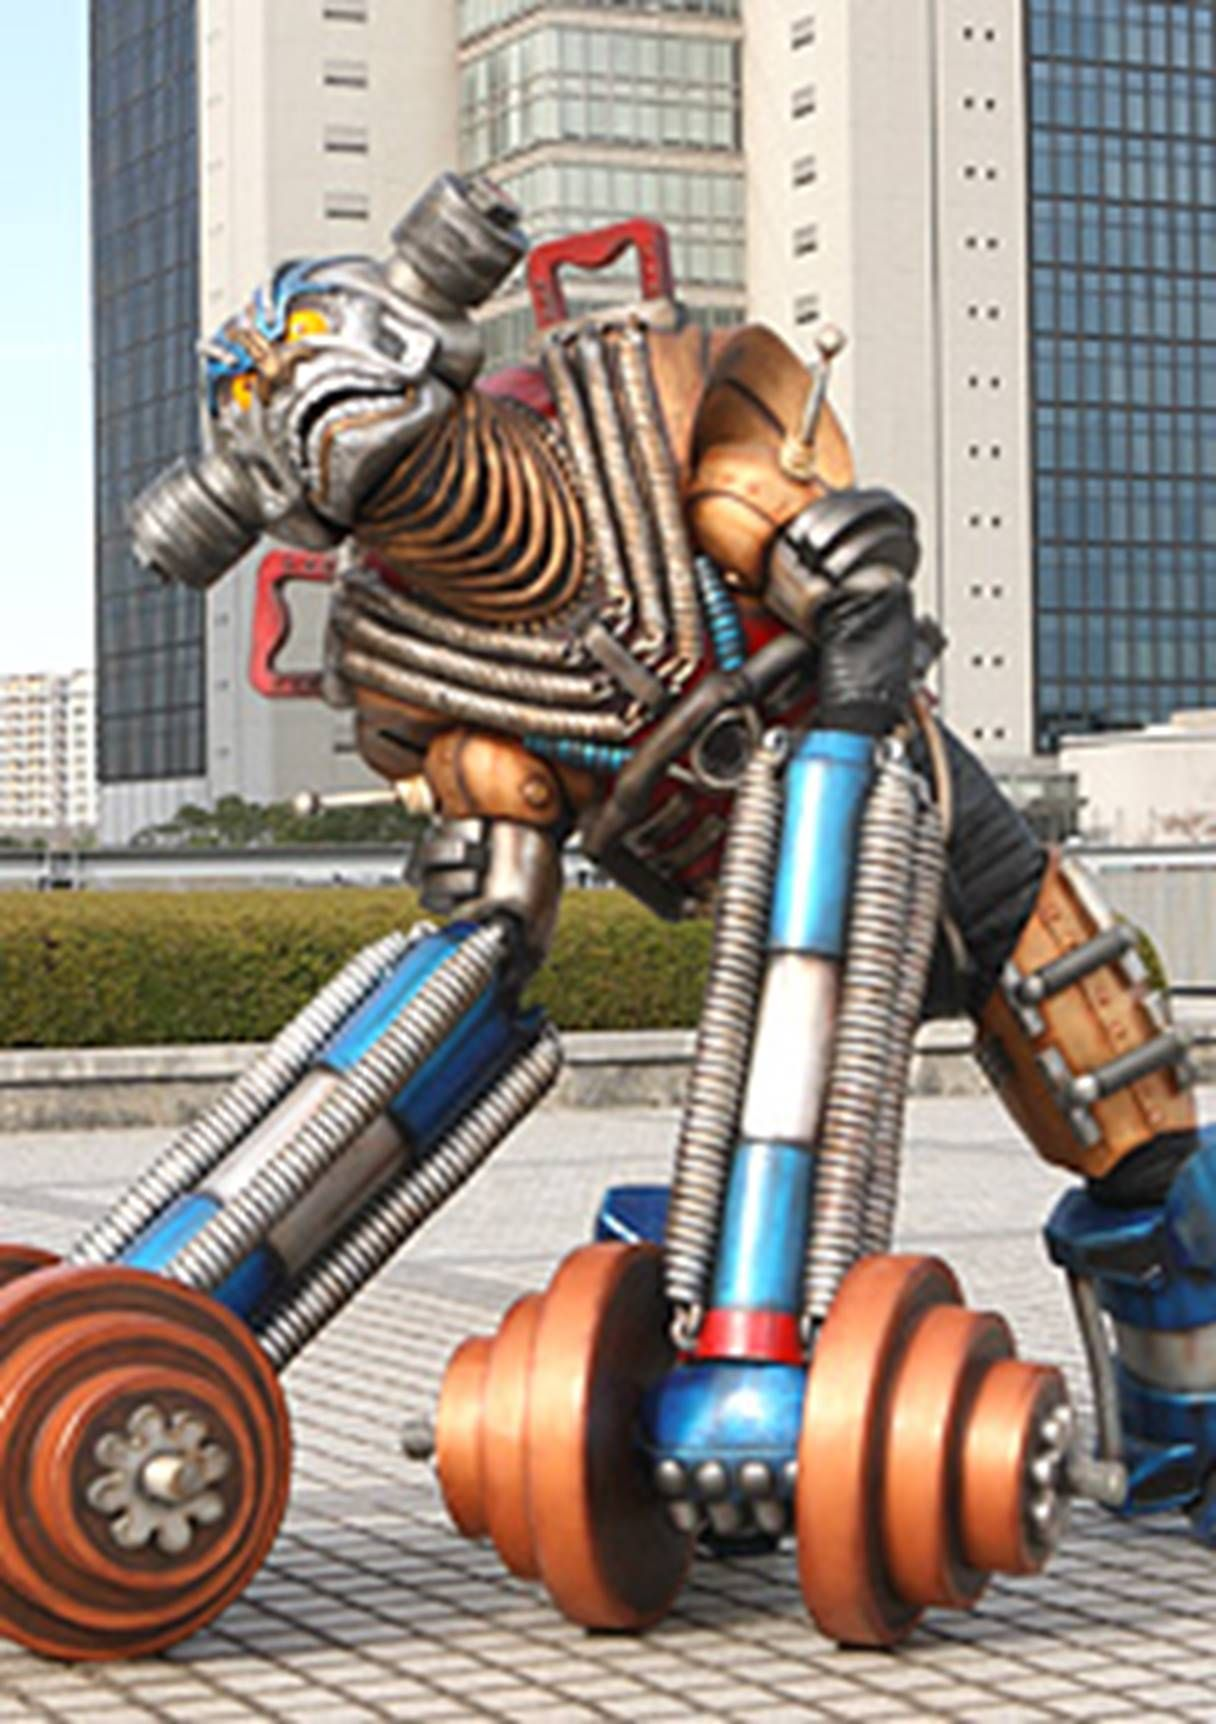 I searched for power rangers rpm dumbbell bot images on Bing and ...